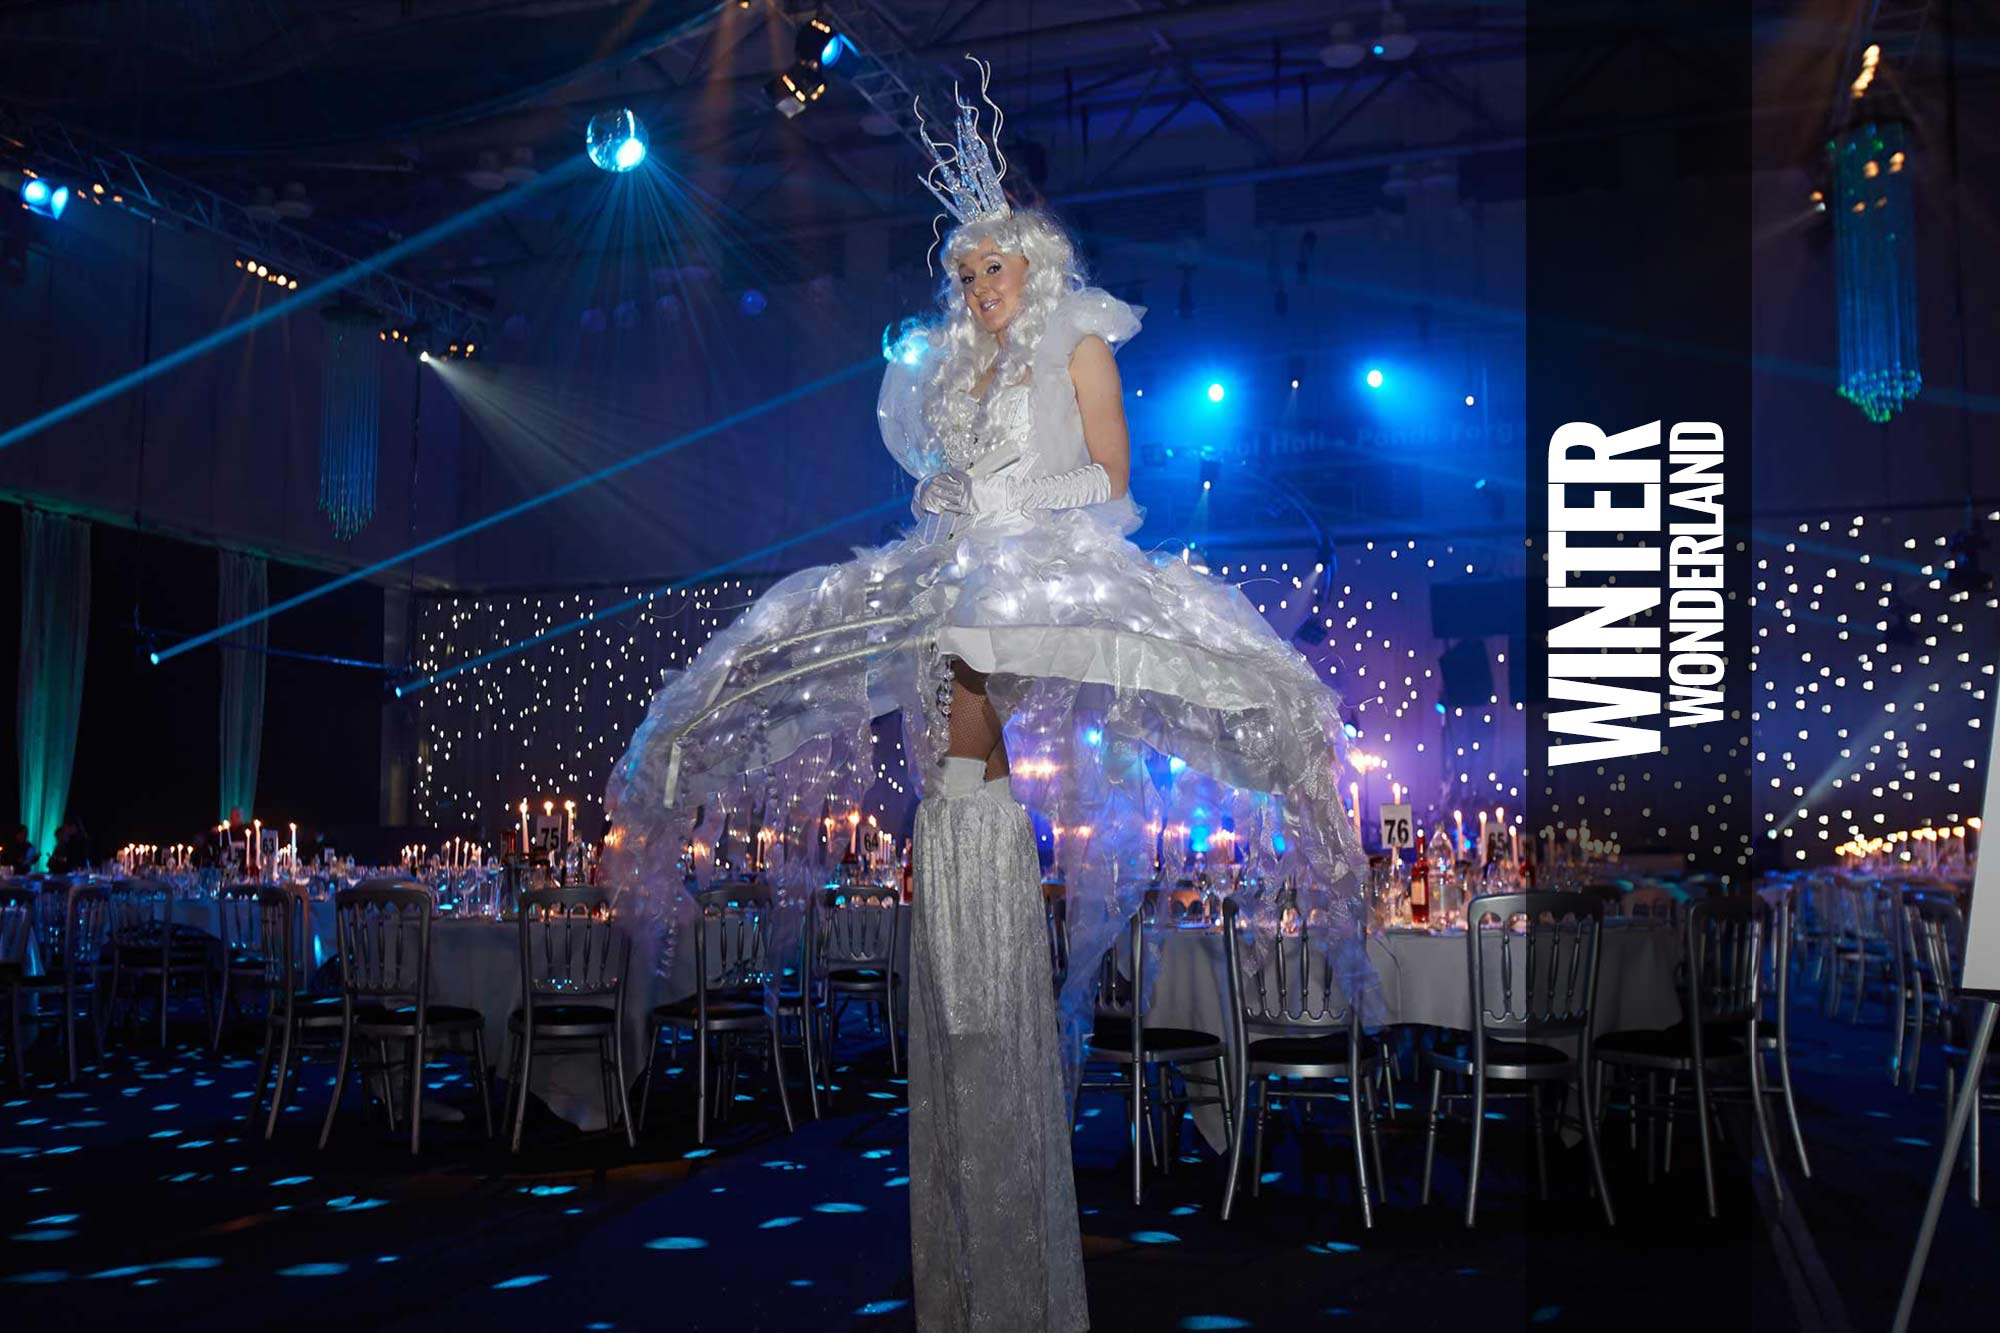 How To Make Baby Shower Decorations At Home Winter Wonderland Themed Events Amp Parties For Hire